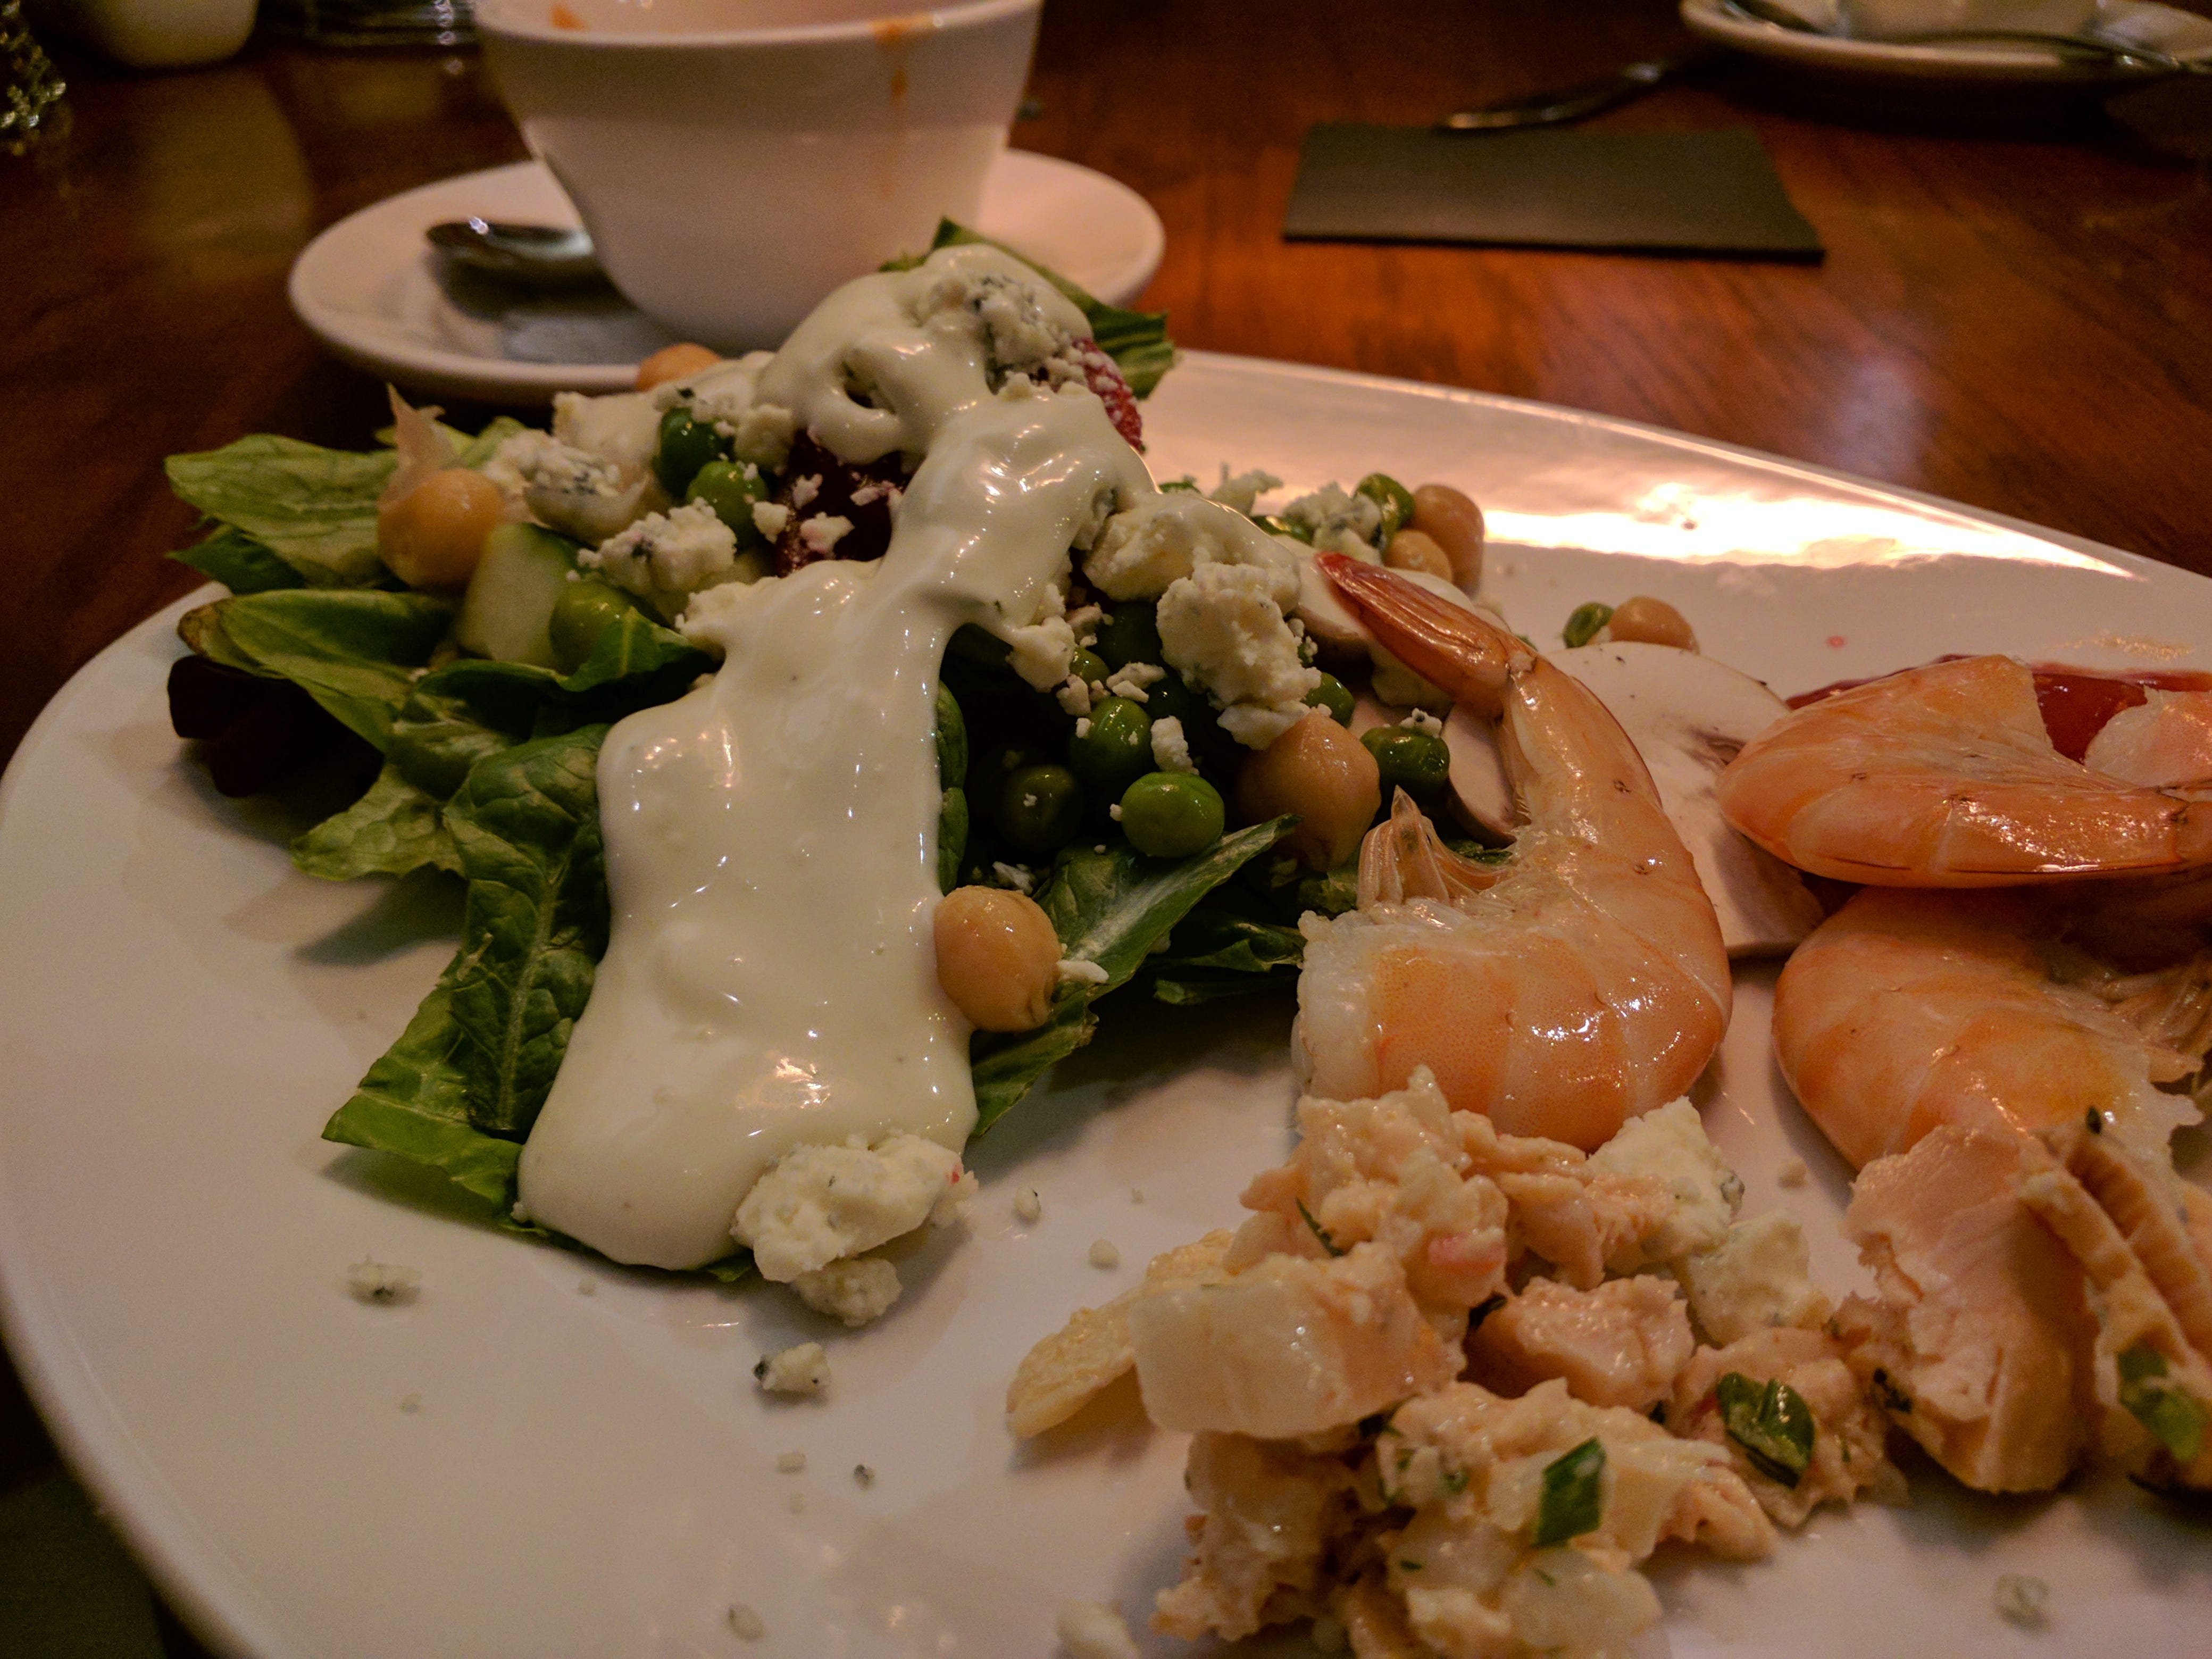 A sampling From Green Marlins salad and seafood bar. Green Marlin is located on U.S. 1 in Vero Beach.